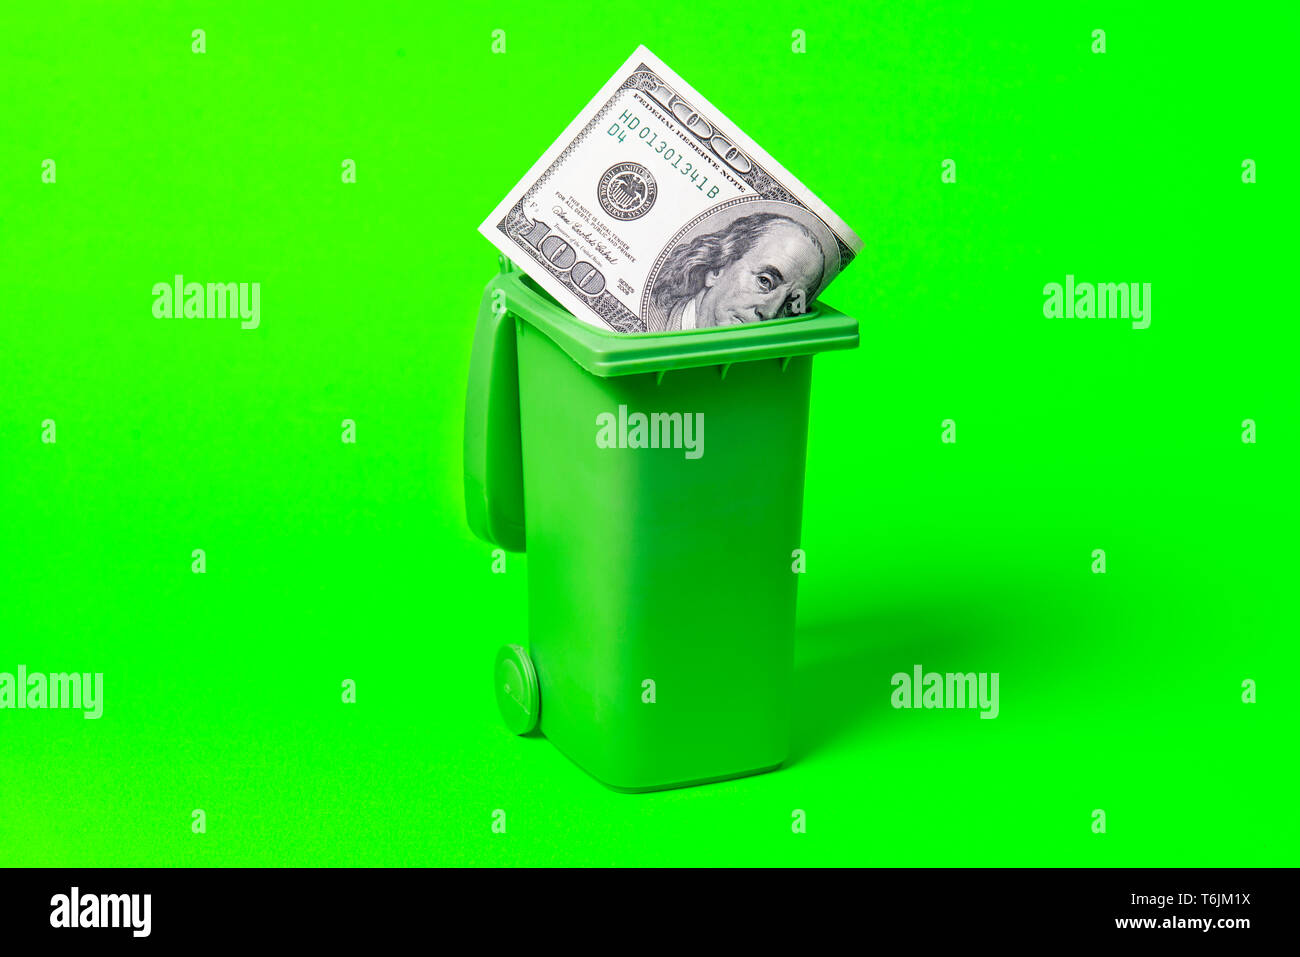 Money trash can isolated on green background. - Stock Image